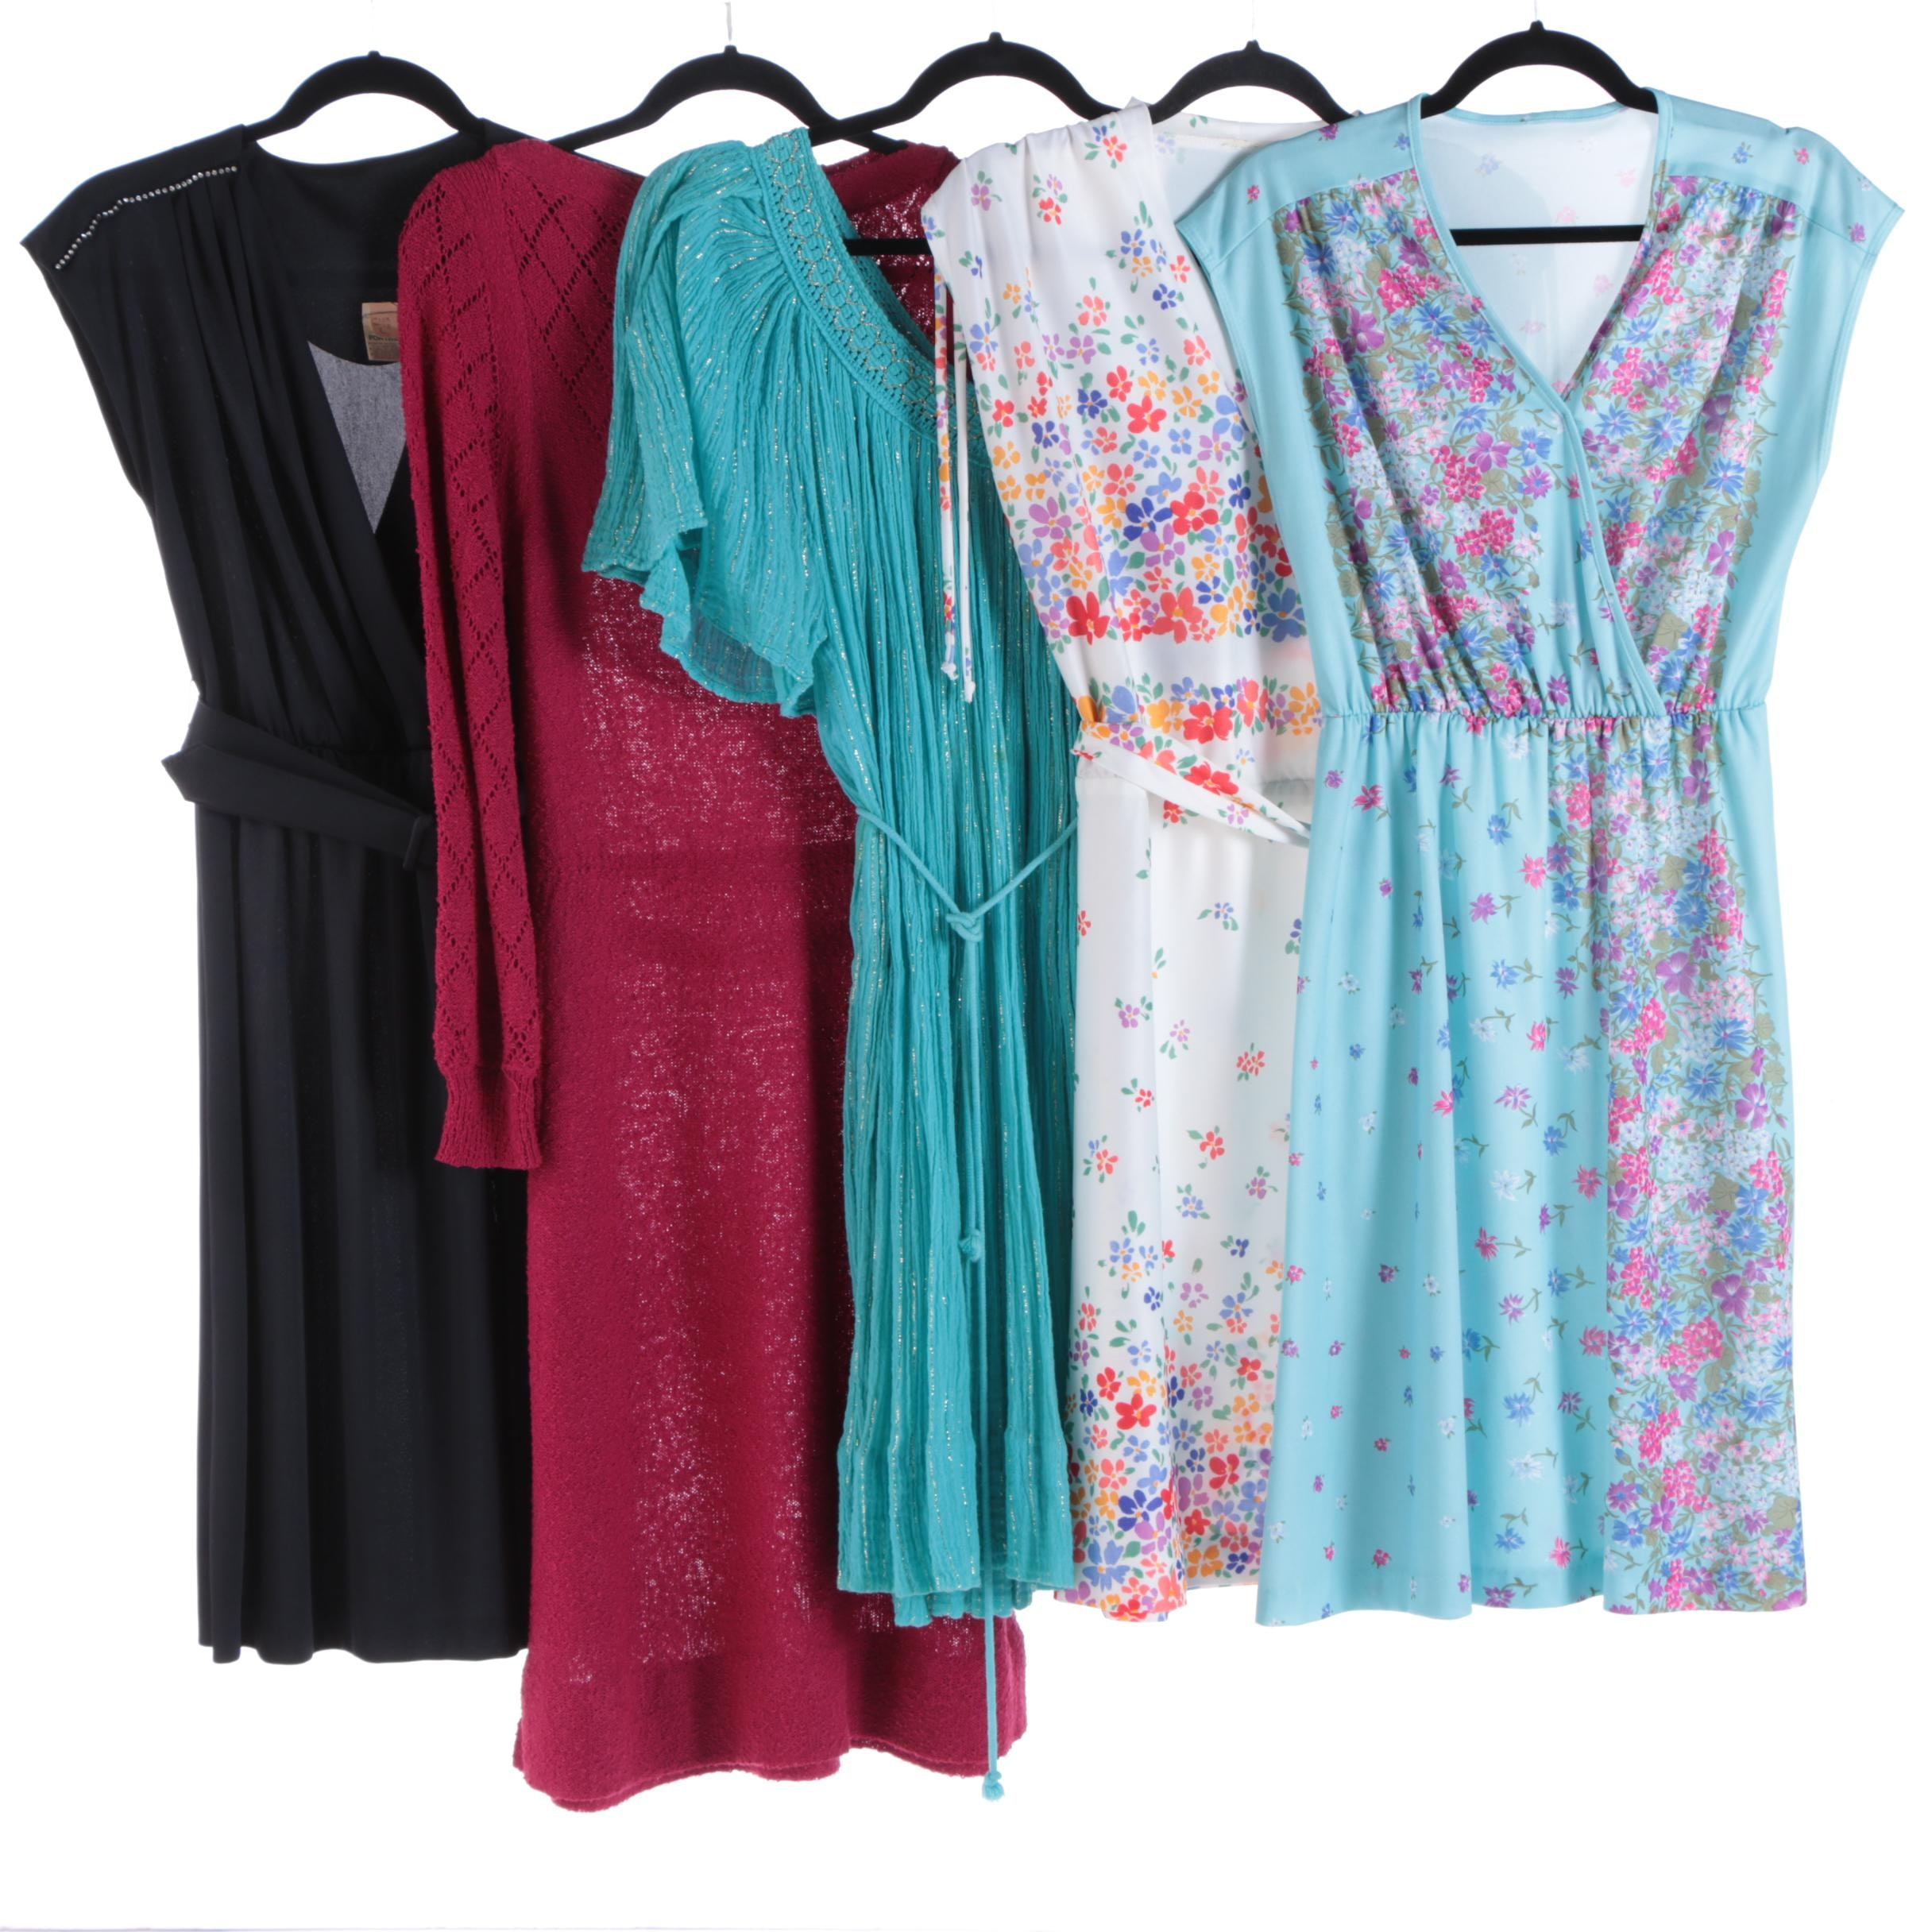 Women's Vintage Casual and Cocktail Dresses Including Just-Mort